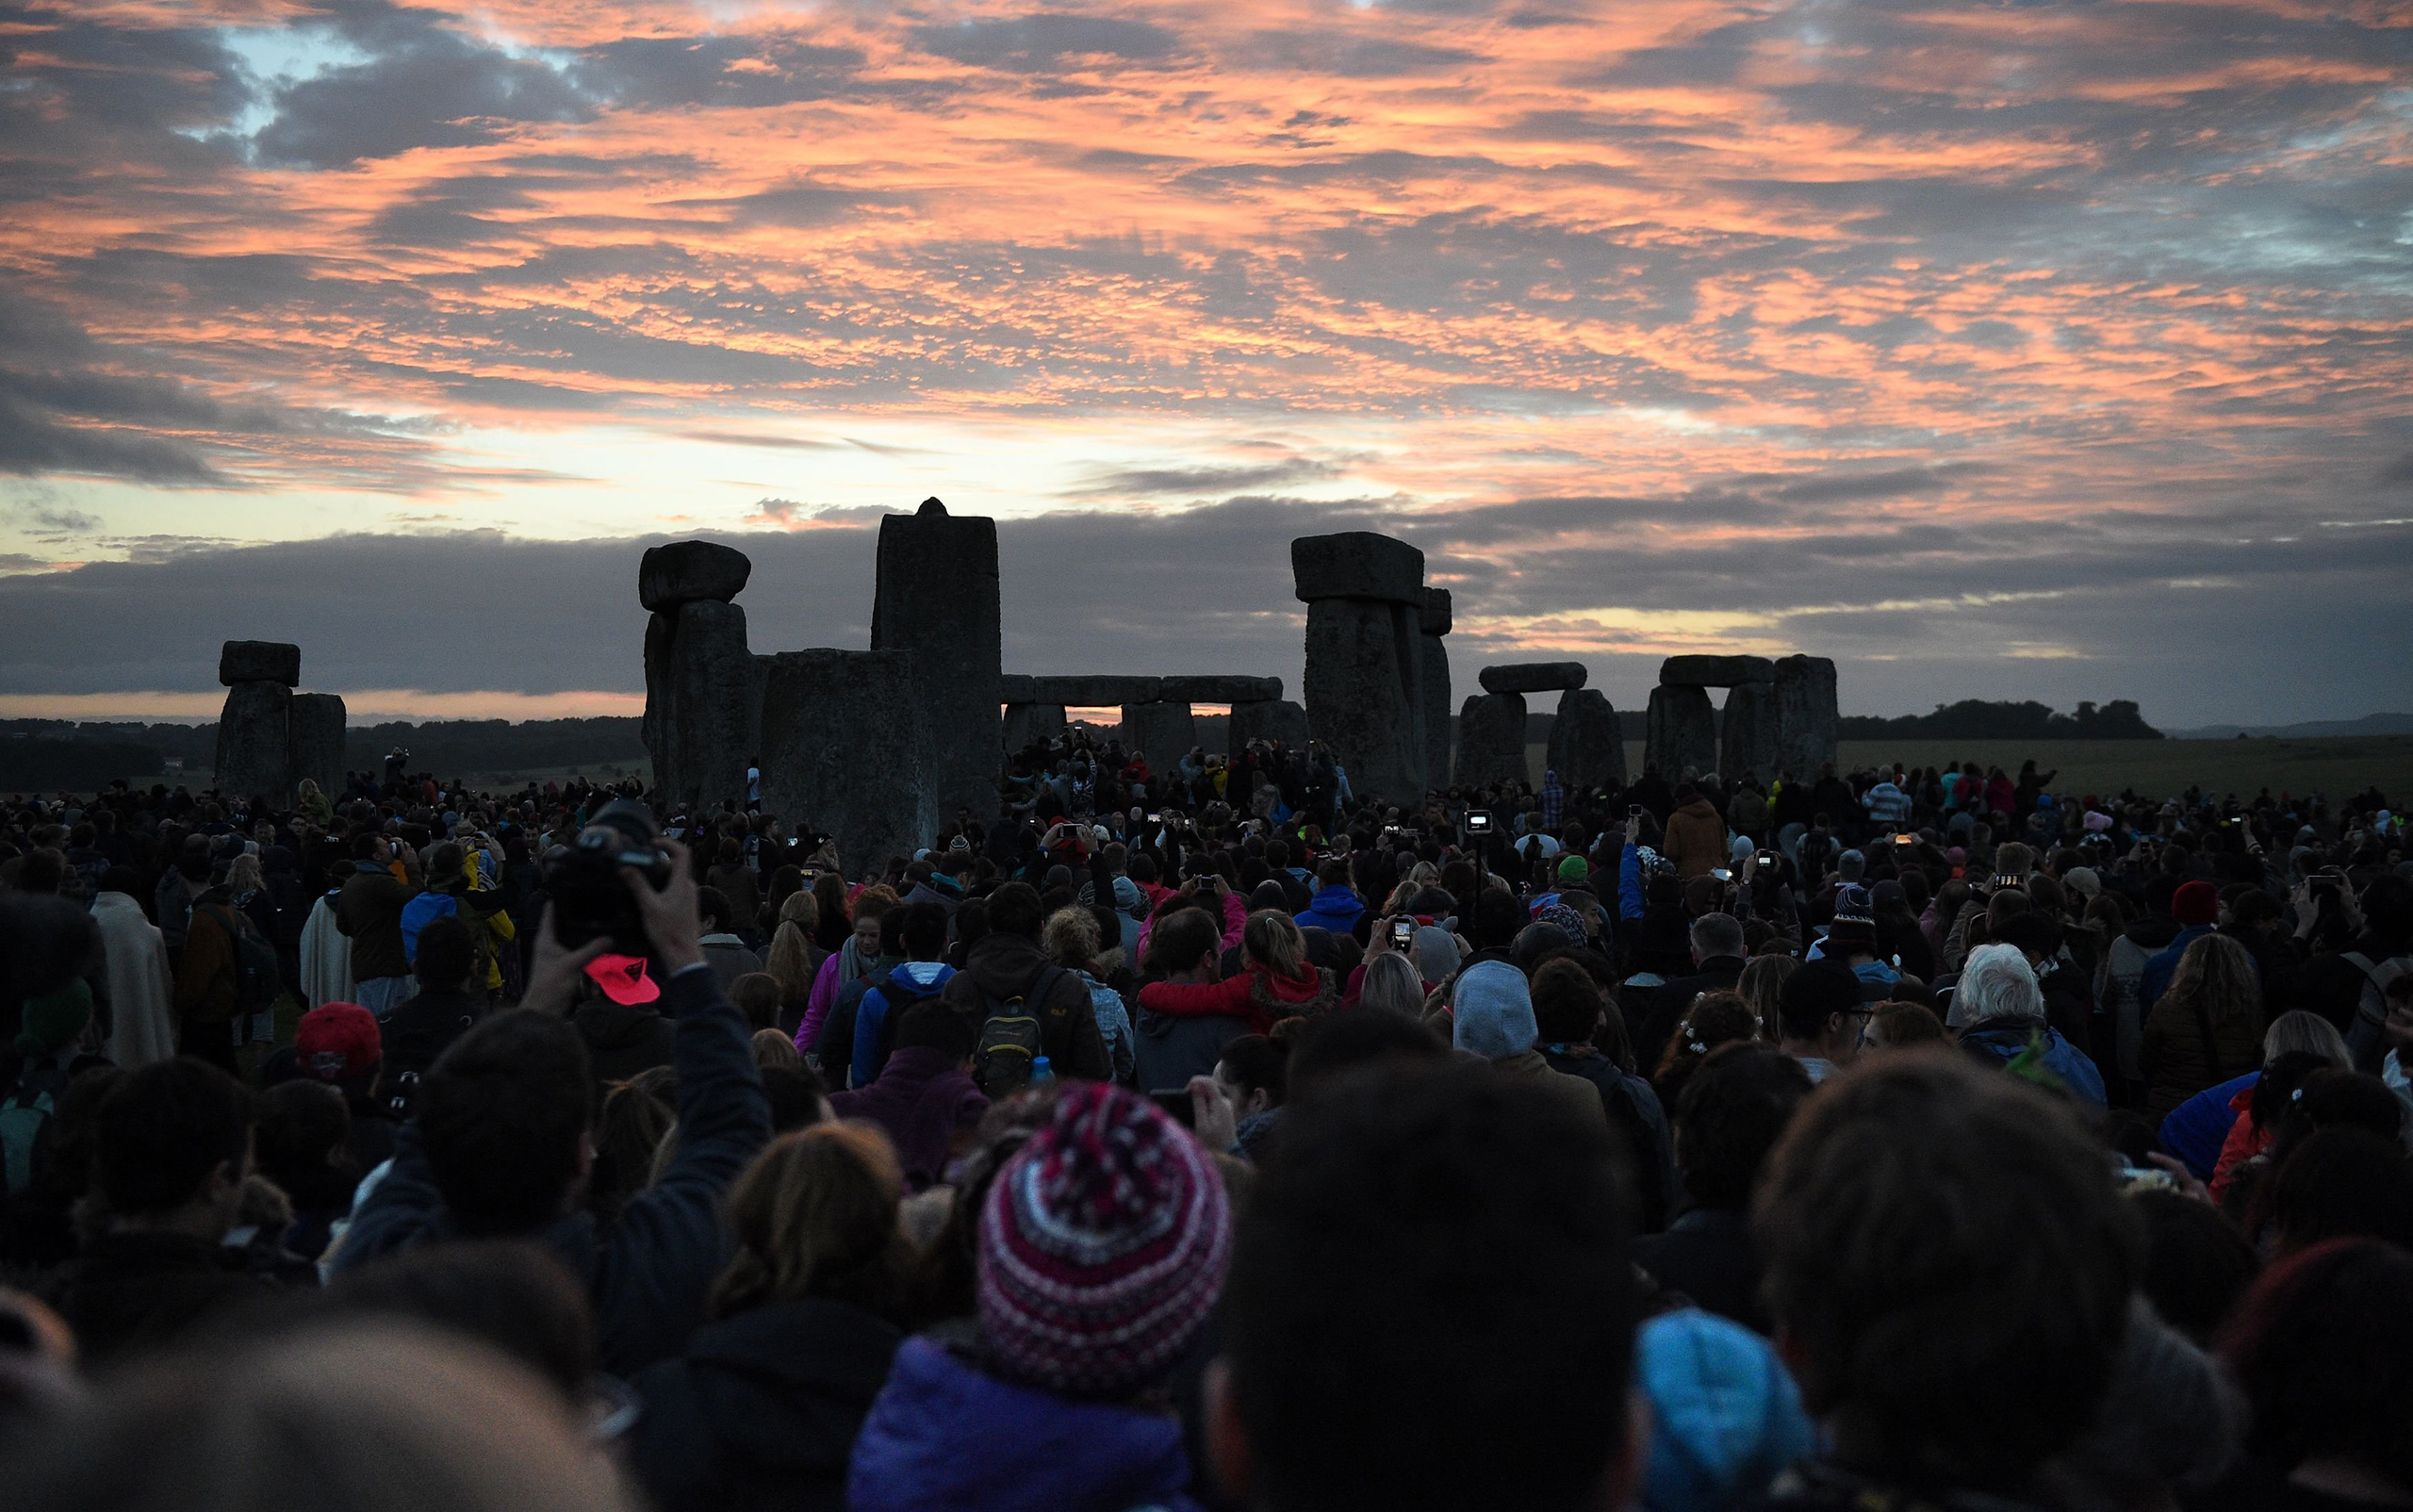 People gather at Stonehenge in Wiltshire to see in the new dawn during this year's Summer Solstice, June 21, 2016.